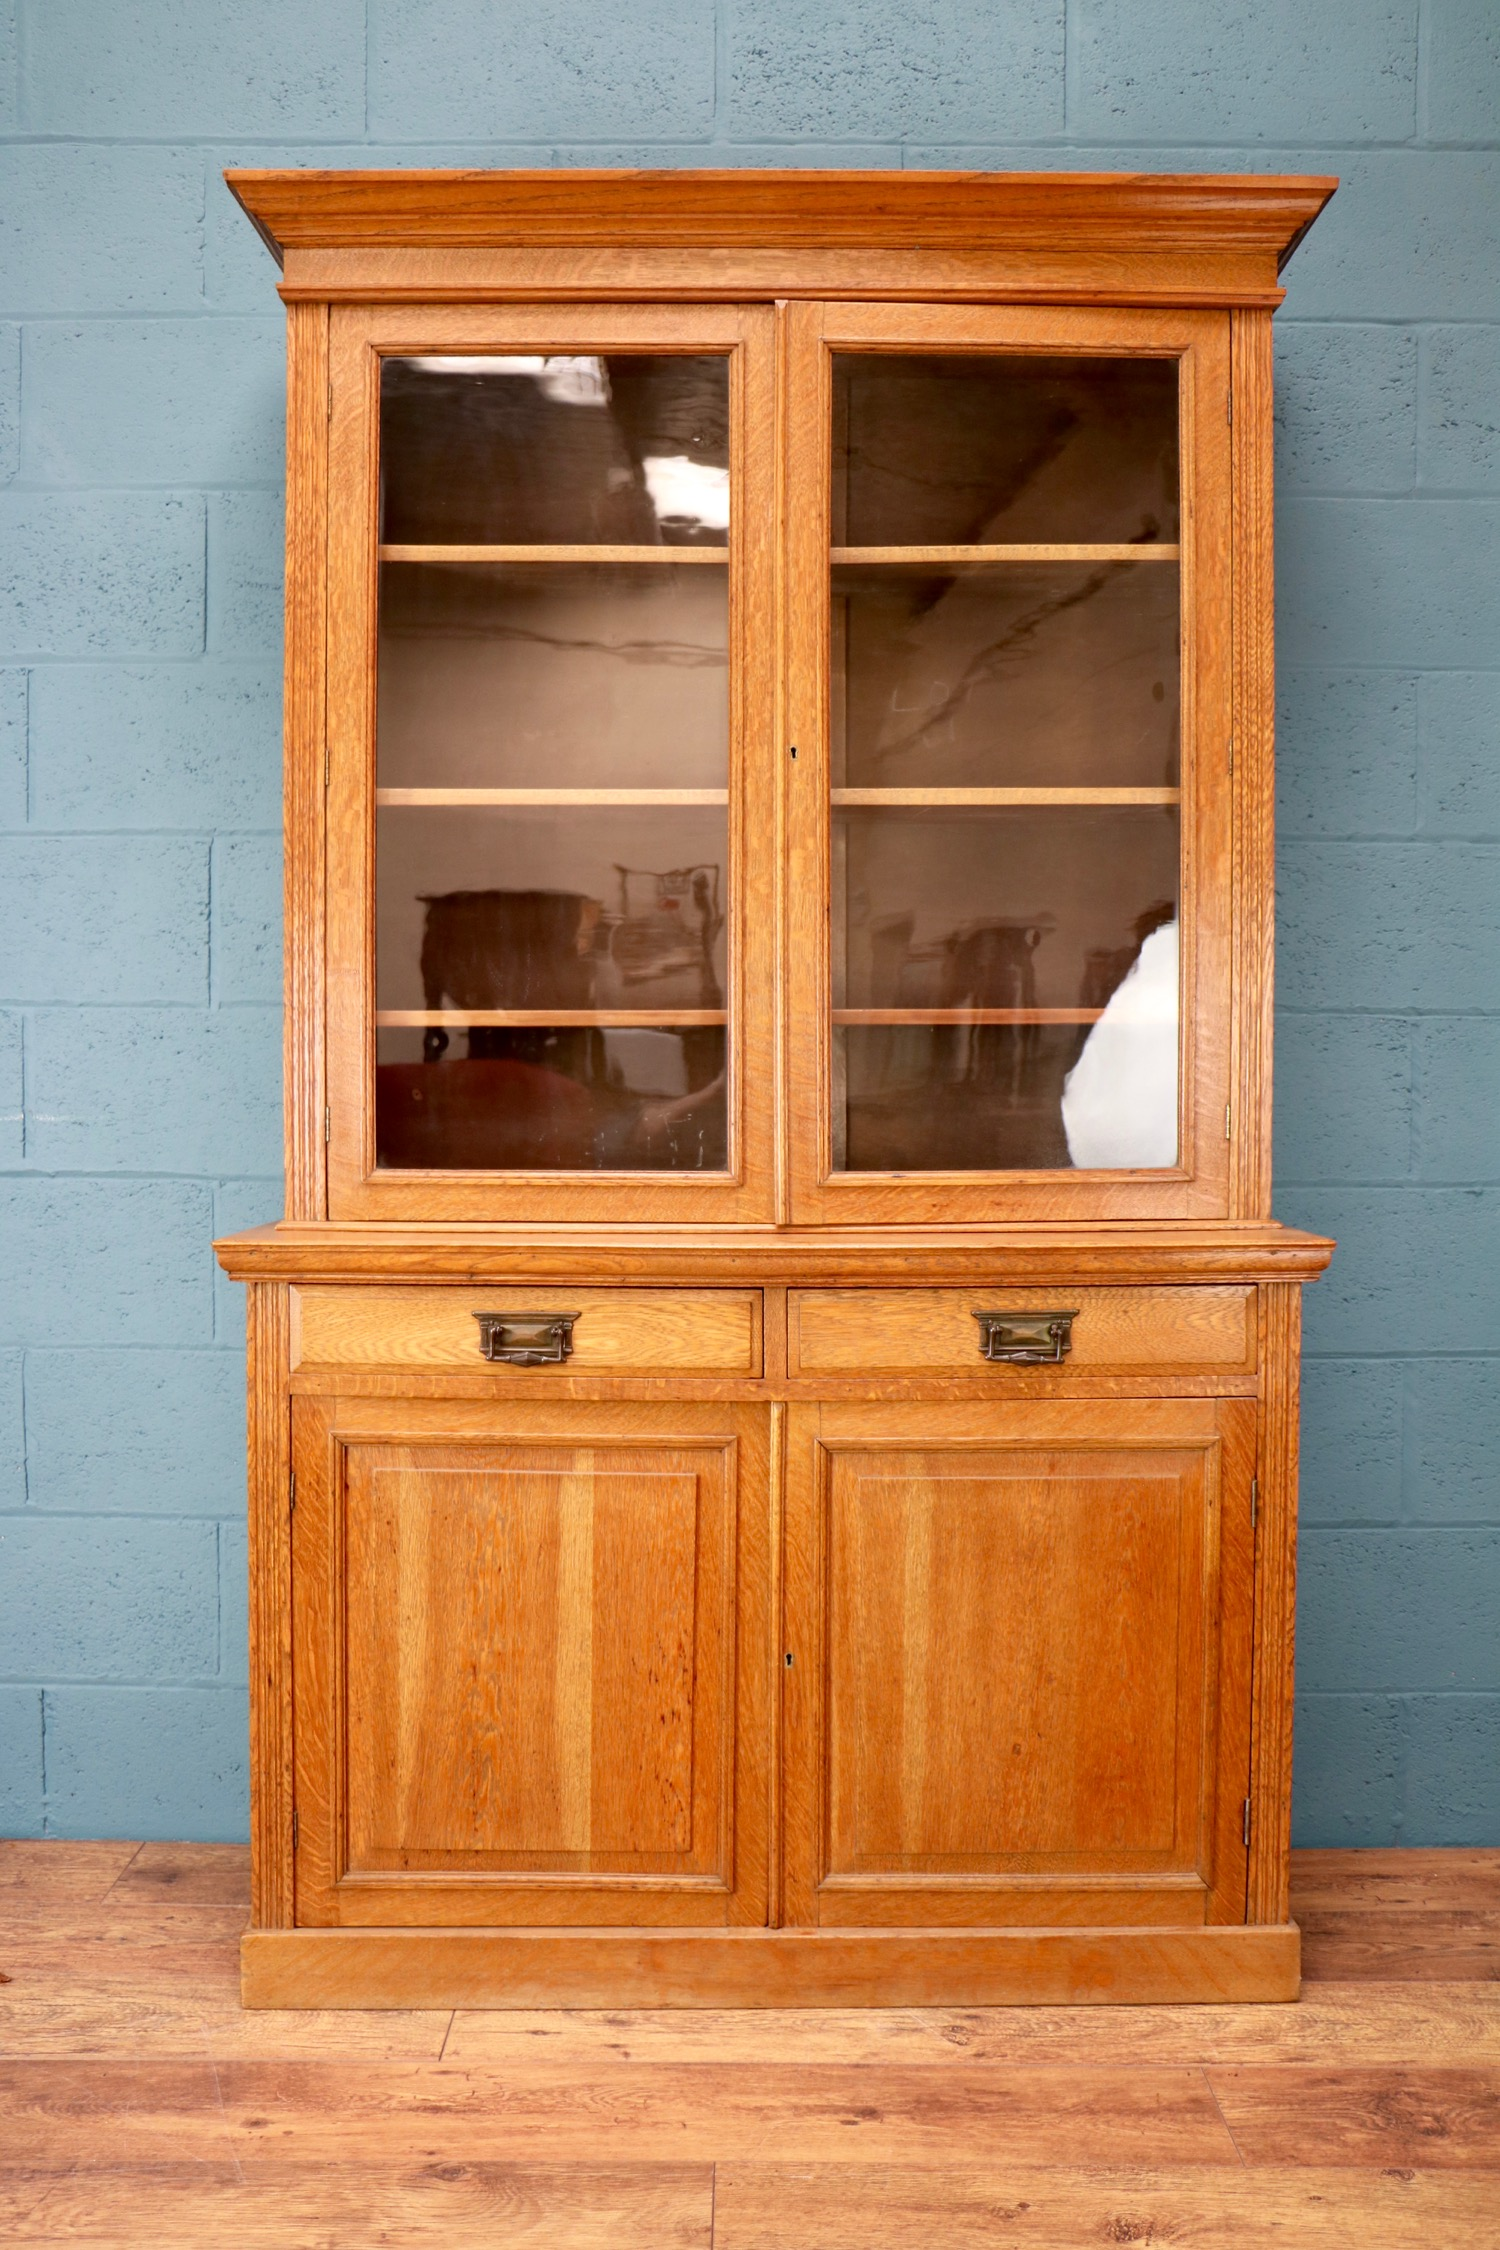 - Just writing to say that I'm very happy with the bookcase, it looks great. Many thanks for getting it to us so quickly.Ben, Leicester